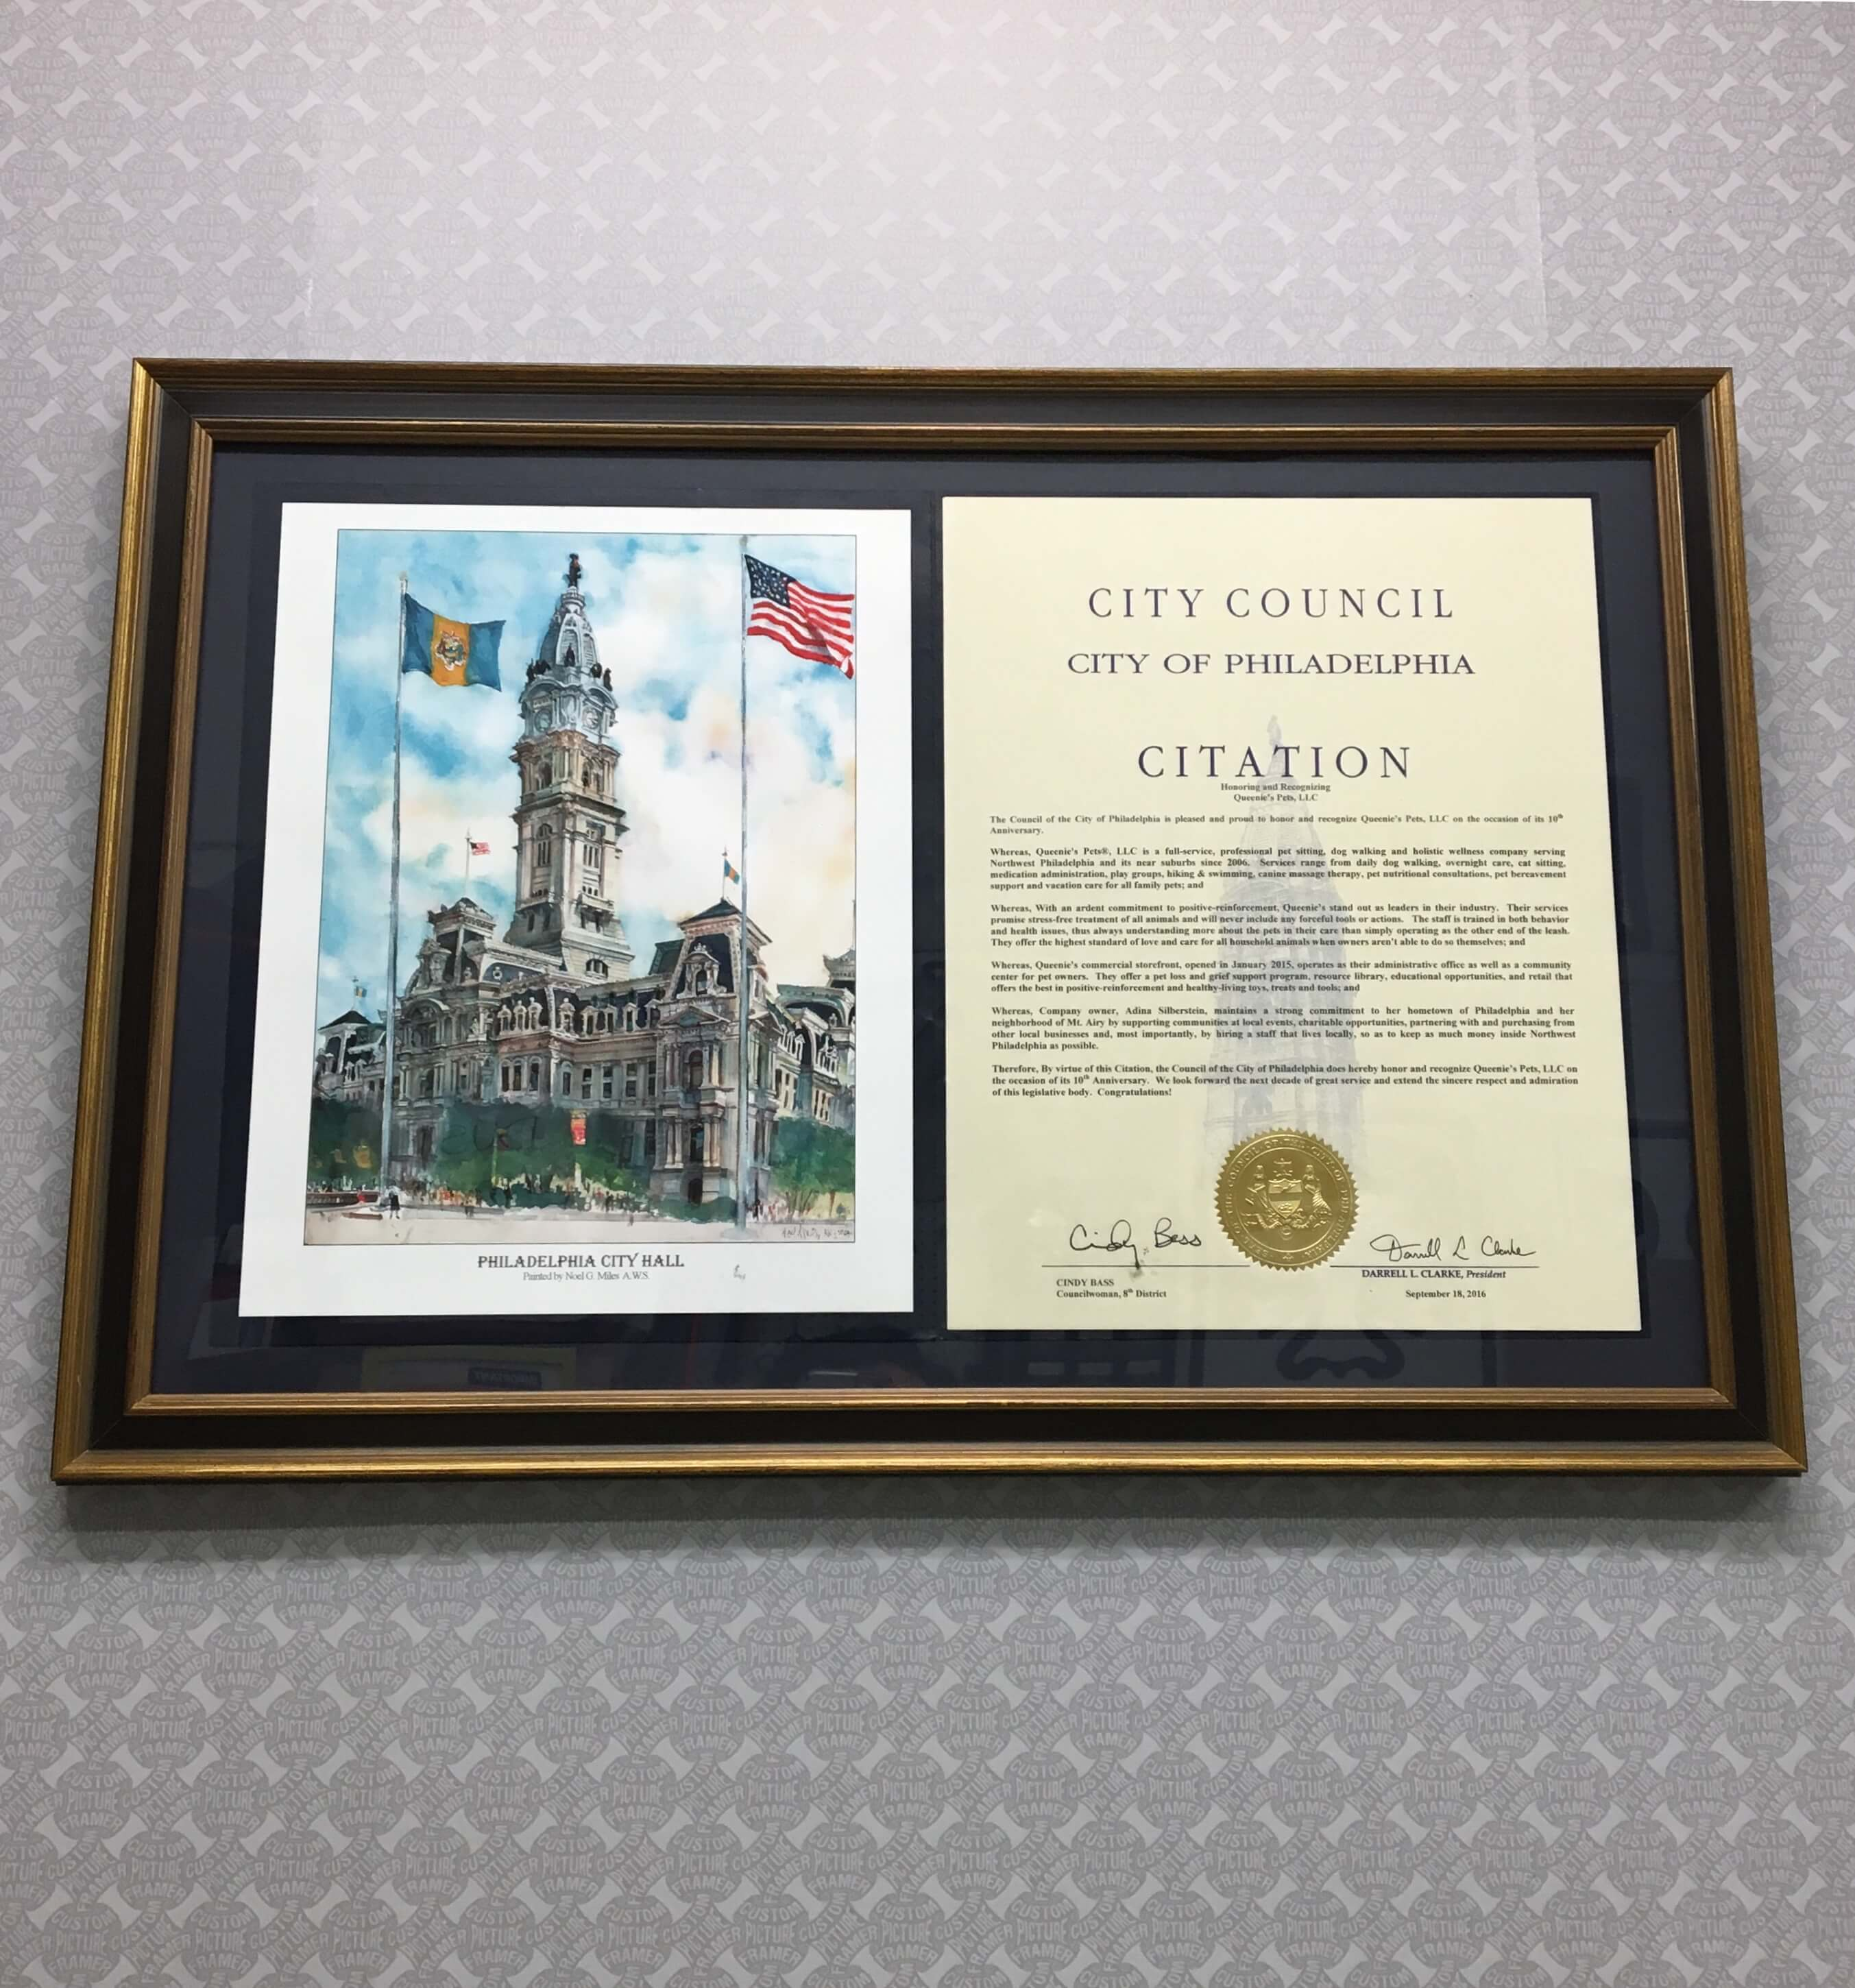 Congrats to Queenie's Pets! If your business has received an award or accolade, show it off with custom framing! See more custom framing options at our Keswick Village showroom just north of Philadelphia in Glenside PA ( Pennsylvania ) , 19038 . Custom Picture Framer of Glenside carries thousands of frame styles, prints, maps, limited editions, mirrors, and more!